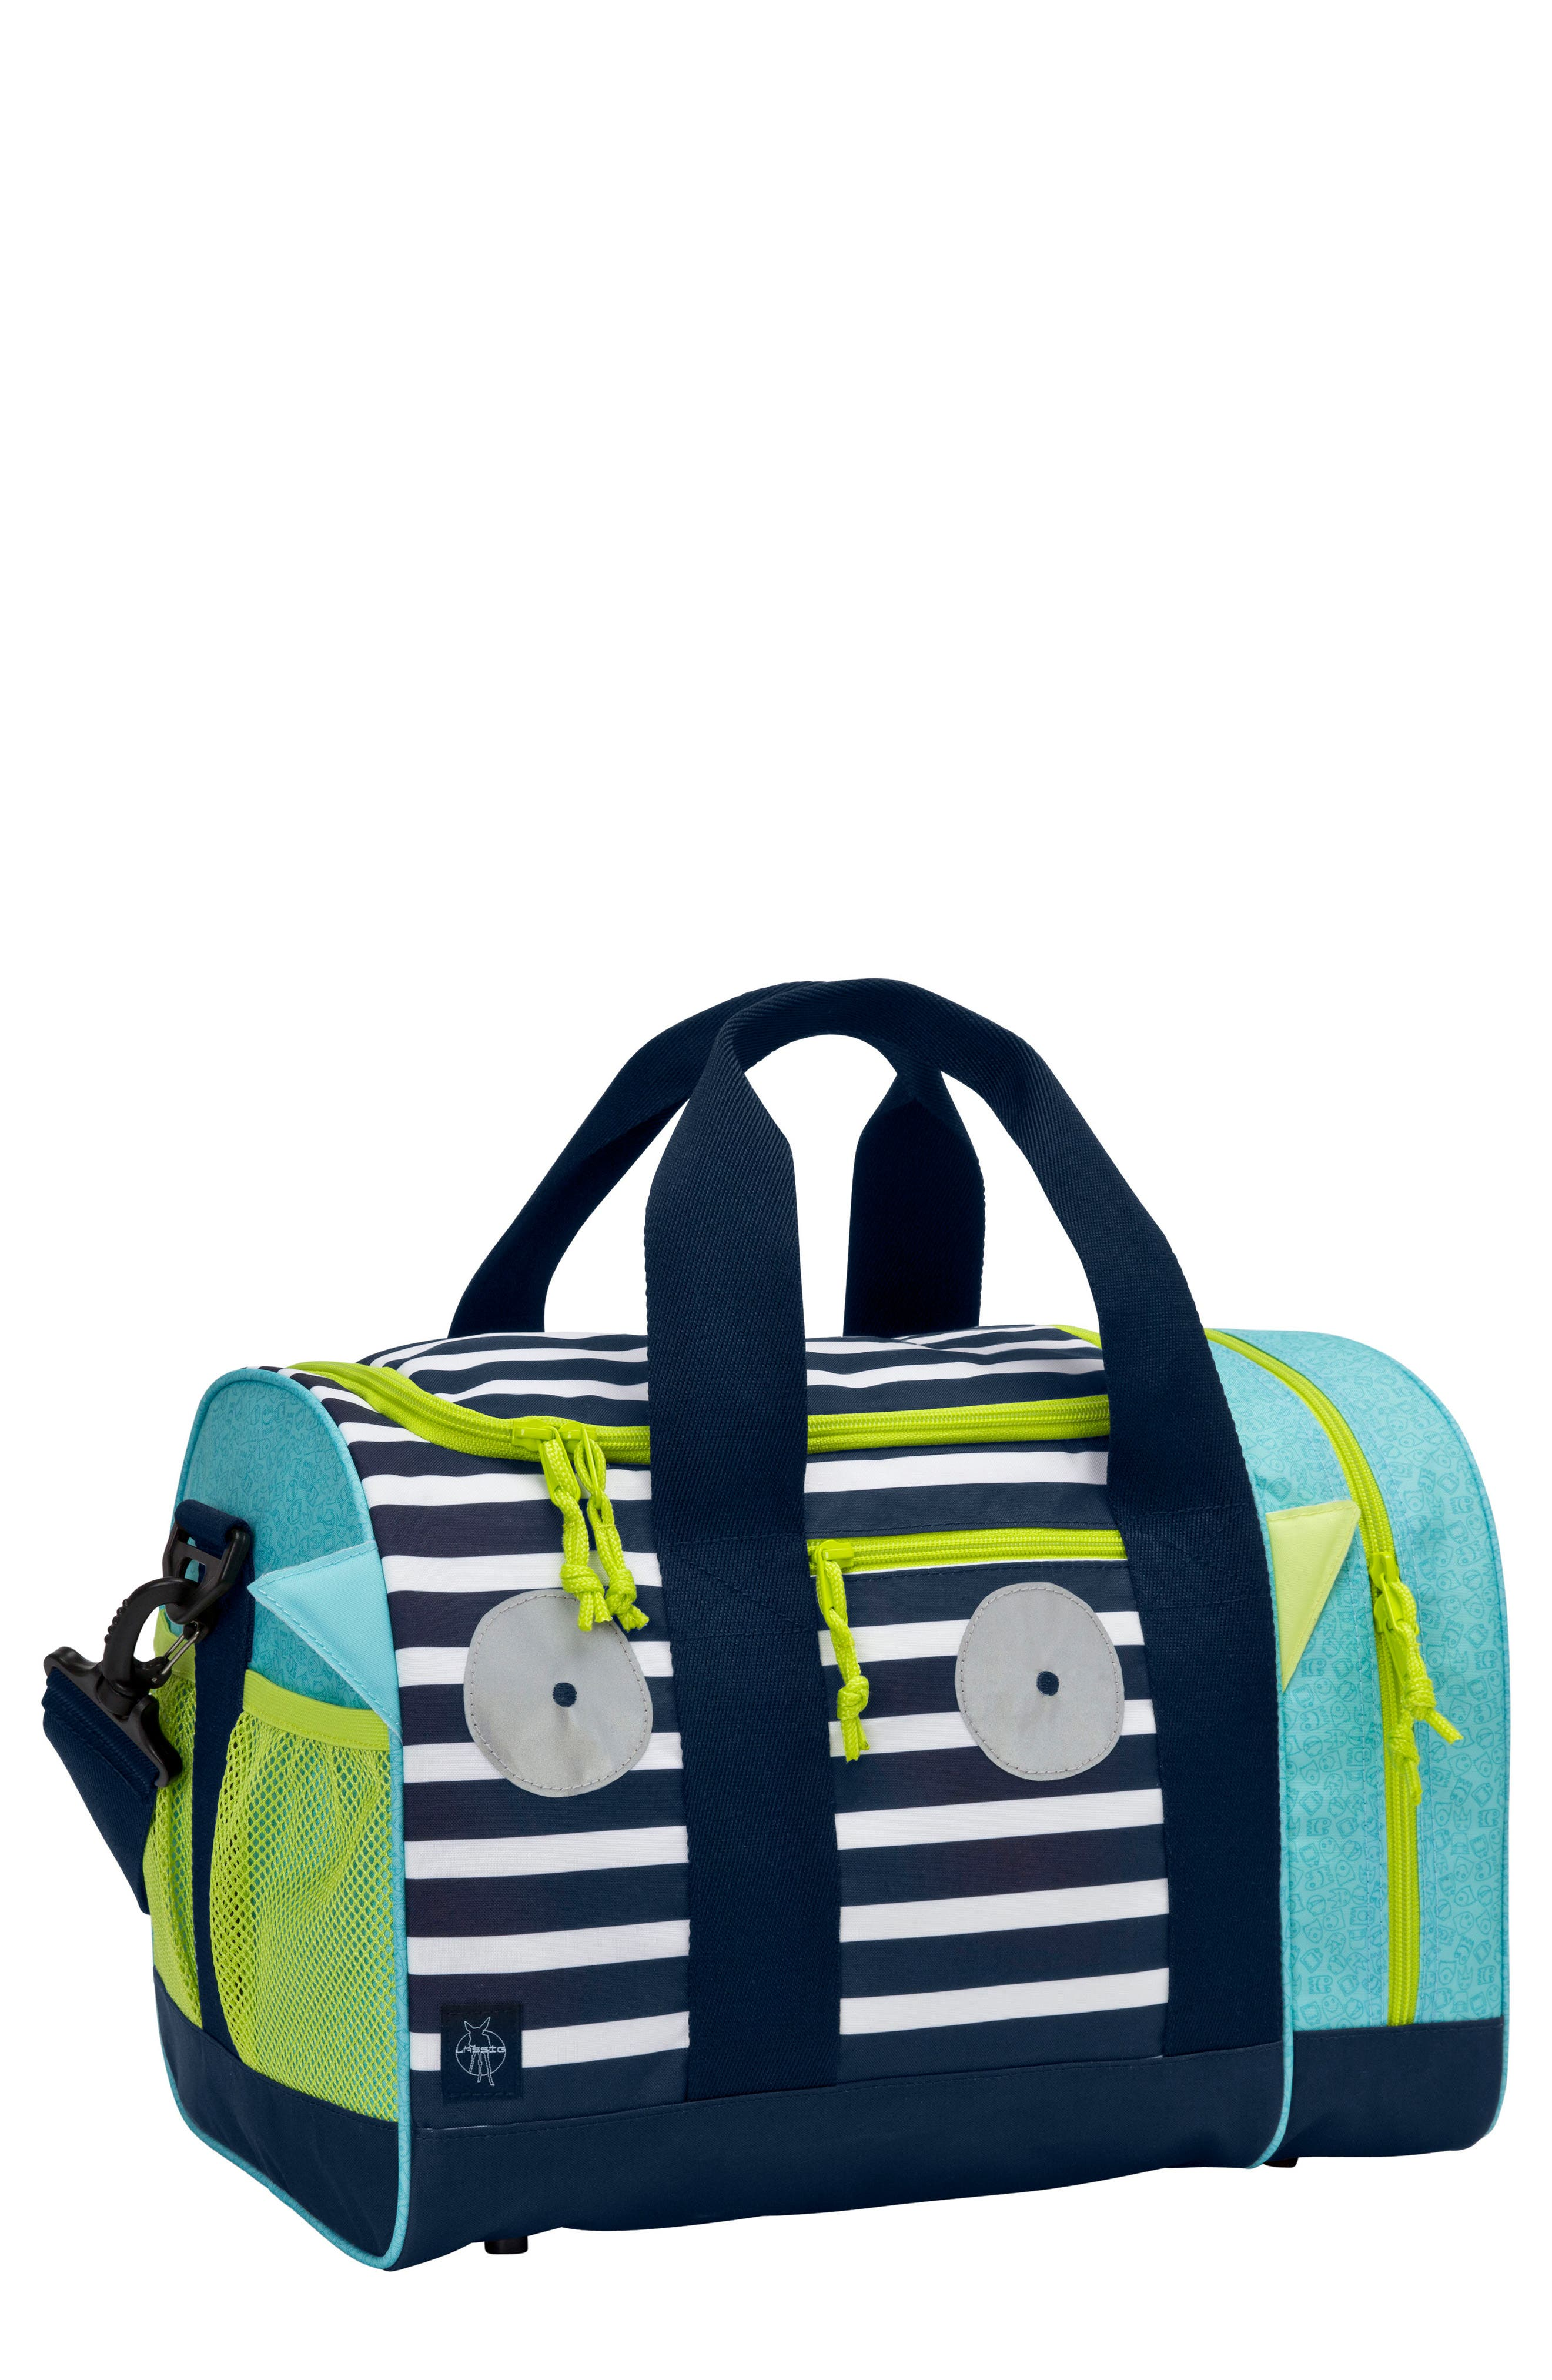 Mini Sports Bag with Glow-in-the-Dark Eyes,                         Main,                         color, 400